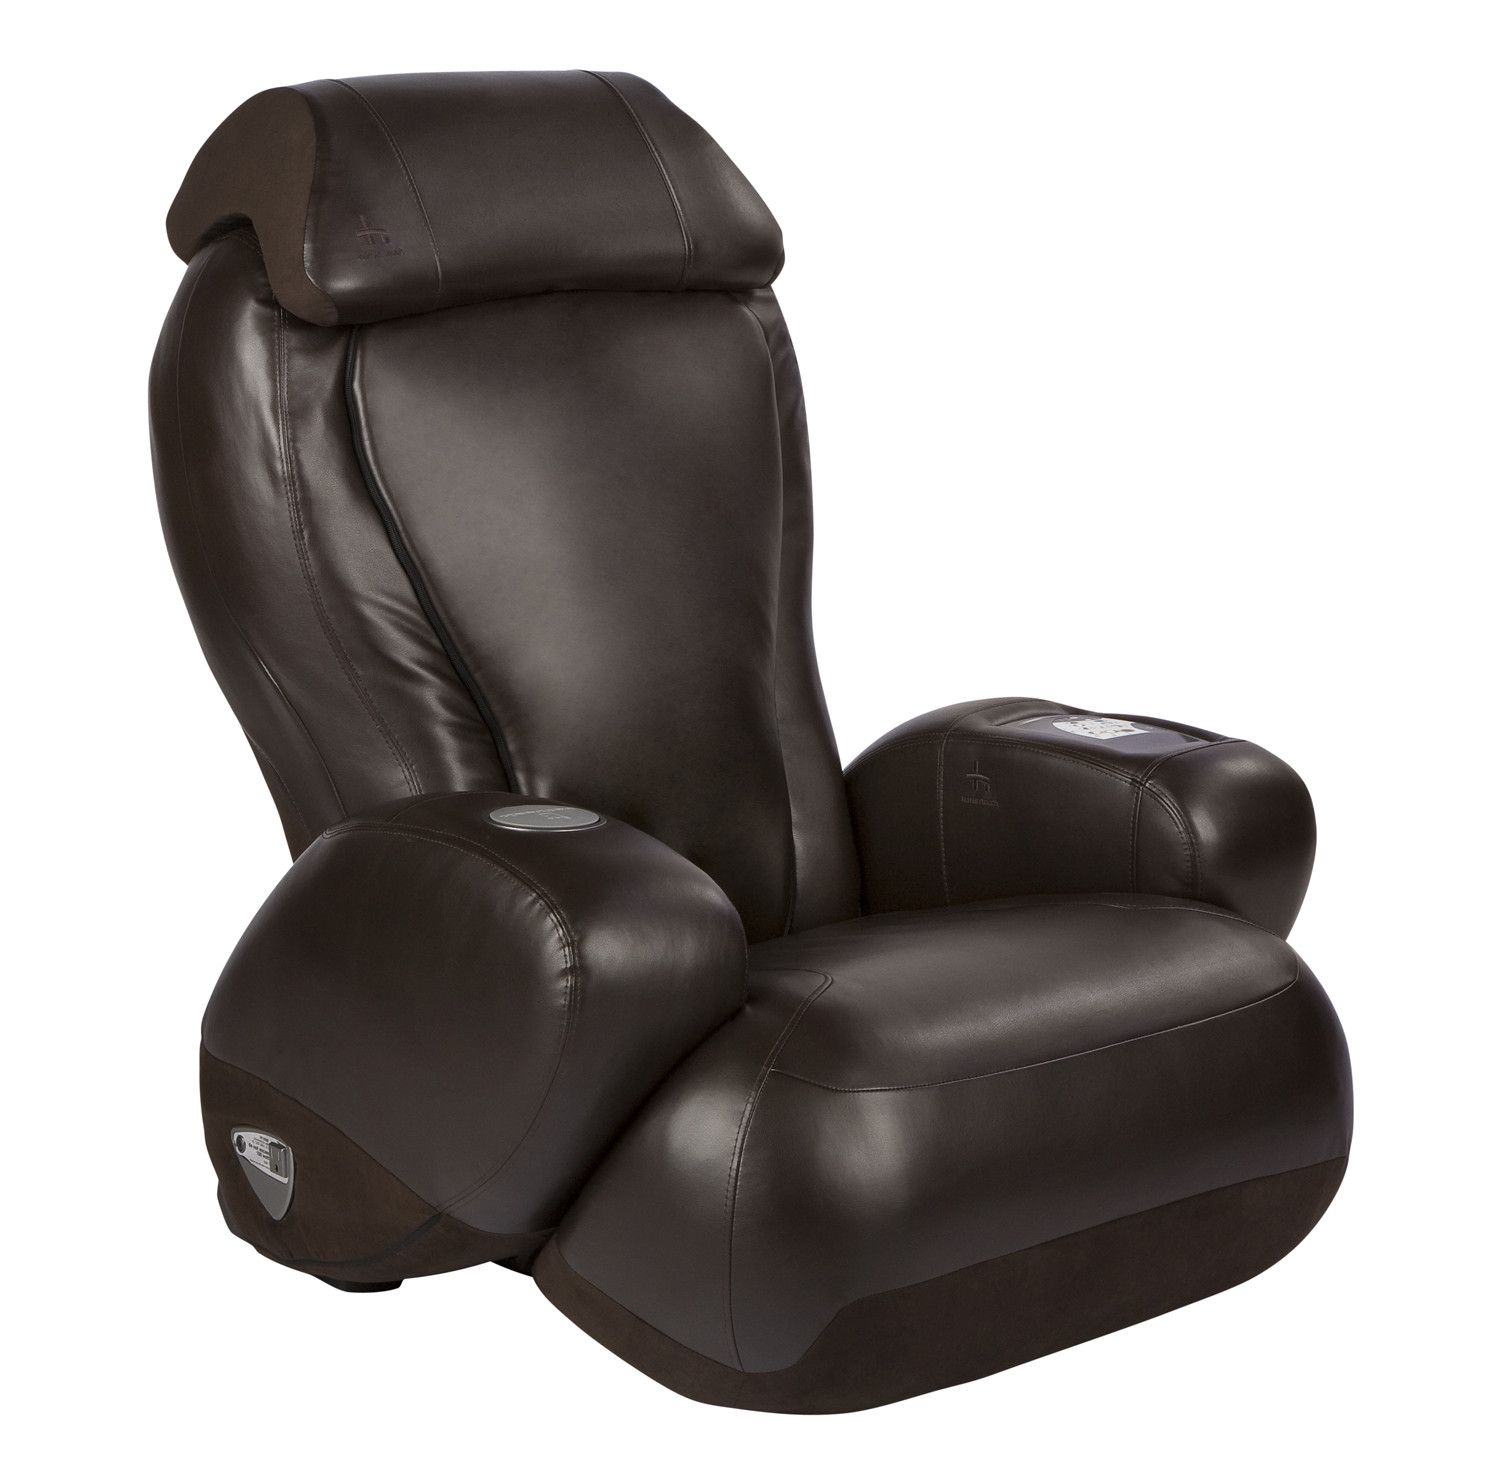 Leather Heated Massage Chair with Ottoman Massage chair